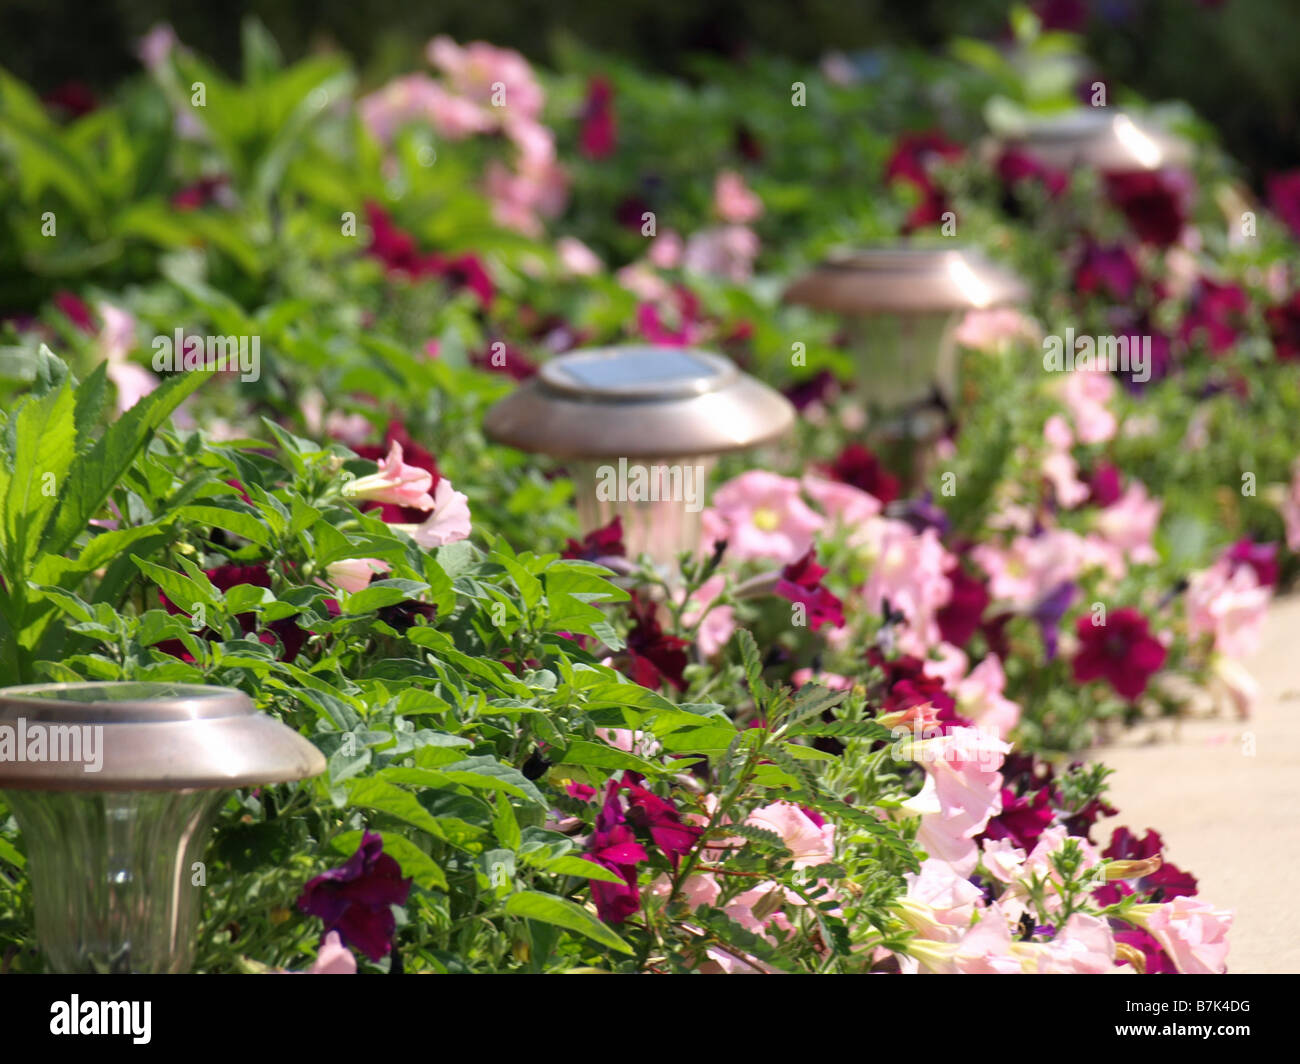 Beautiful pink and rose colored petunias along a garden walk. There are garden lights along edge of walk. - Stock Image